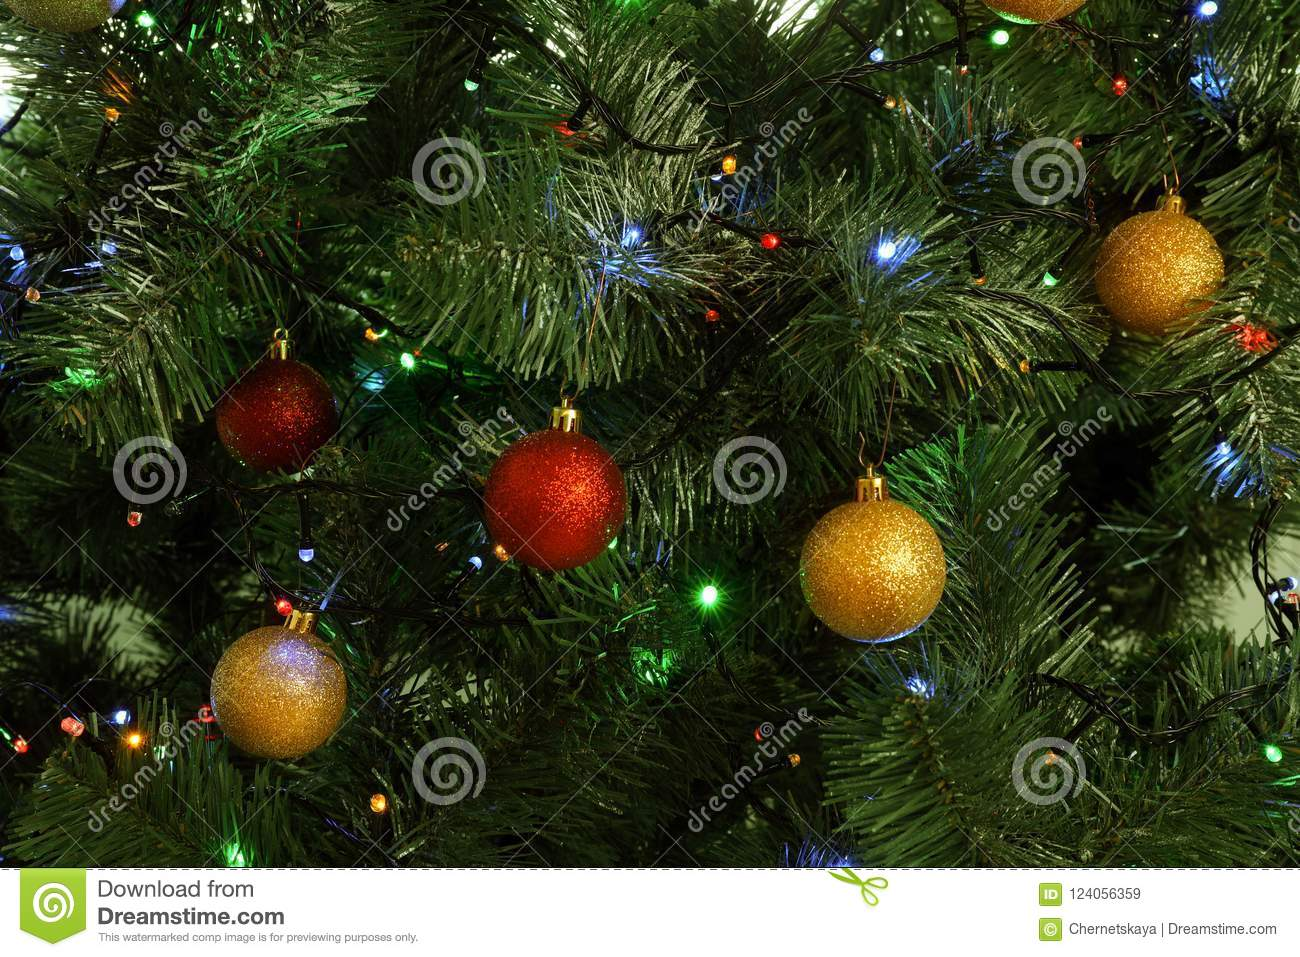 Fir tree with festive decor and glowing Christmas lights